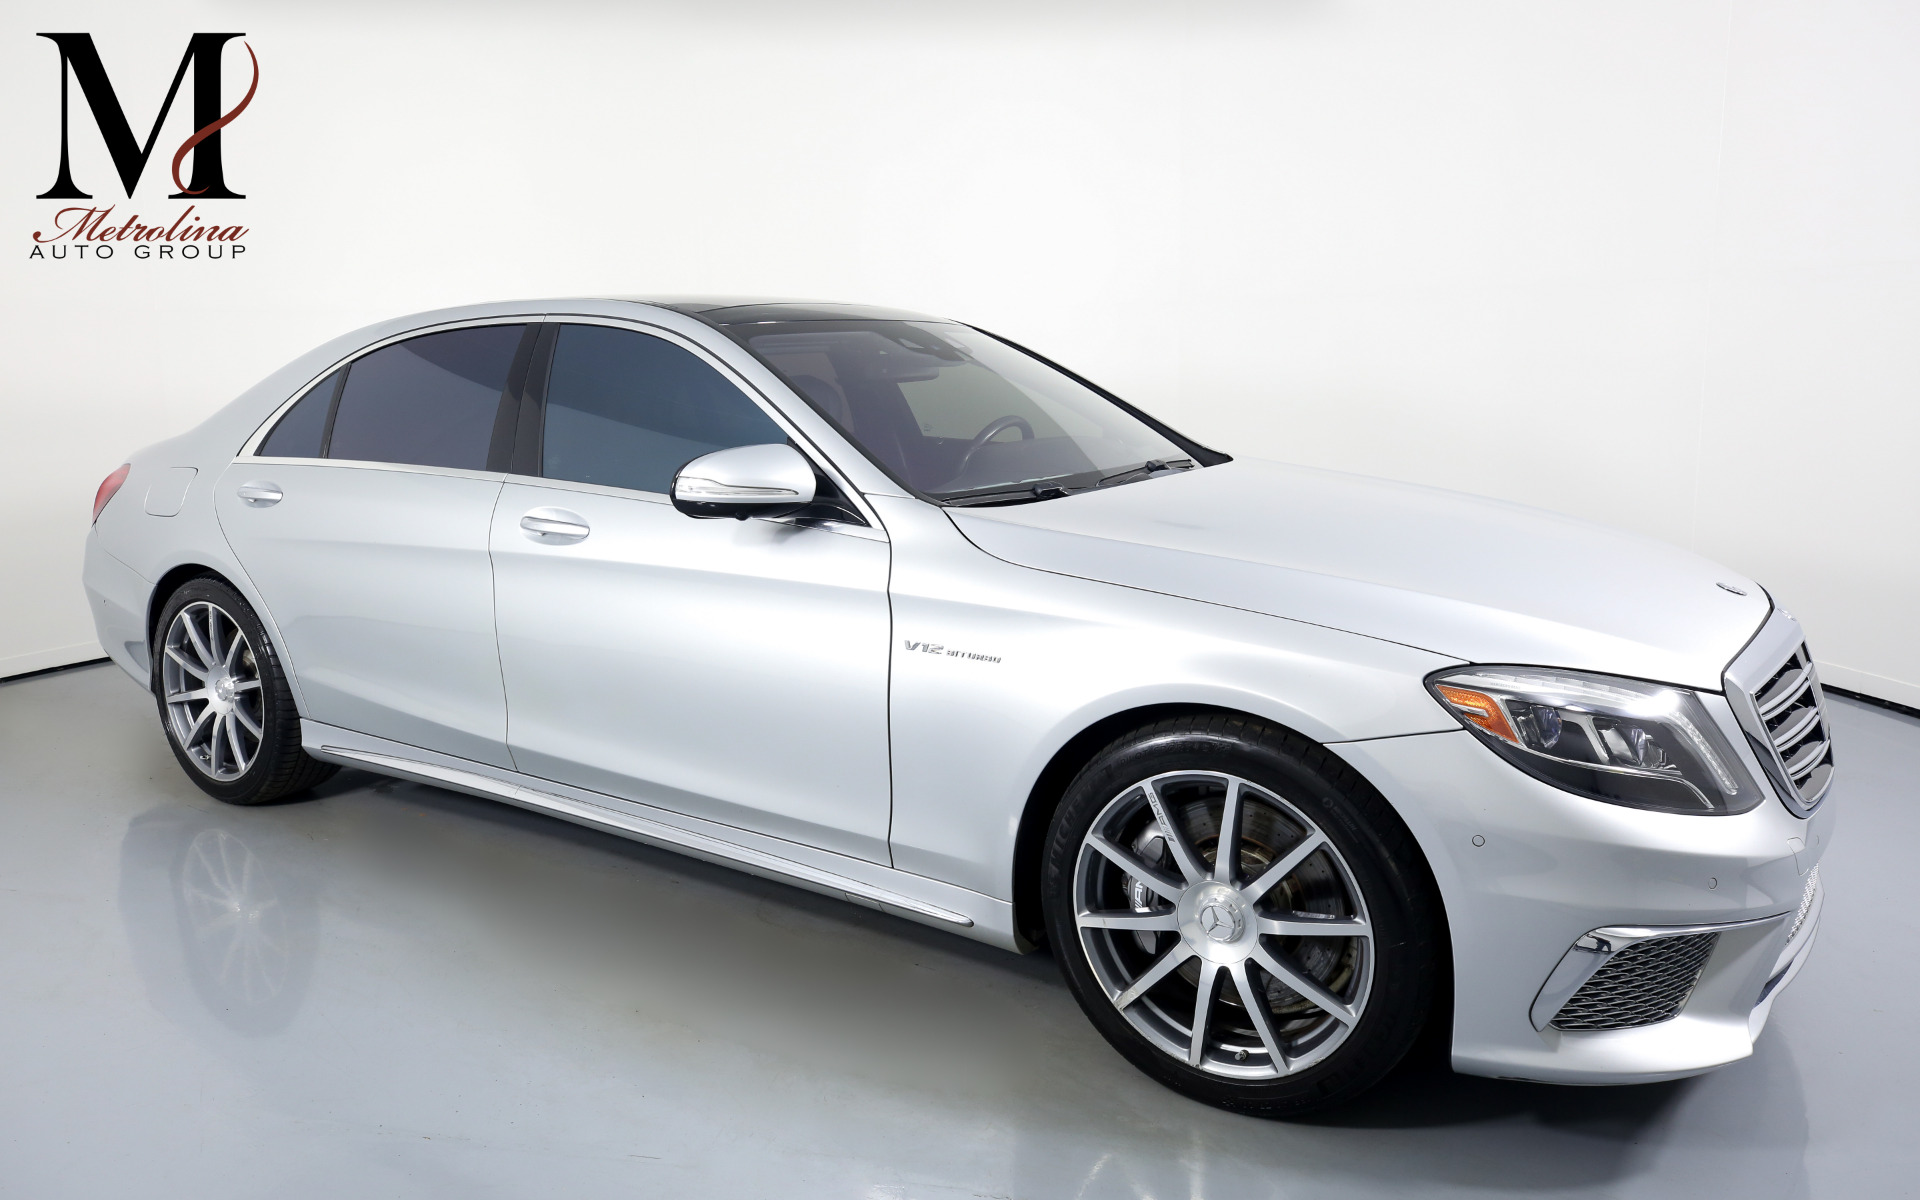 Used 2015 Mercedes-Benz S-Class S 65 AMG for sale $74,996 at Metrolina Auto Group in Charlotte NC 28217 - 1